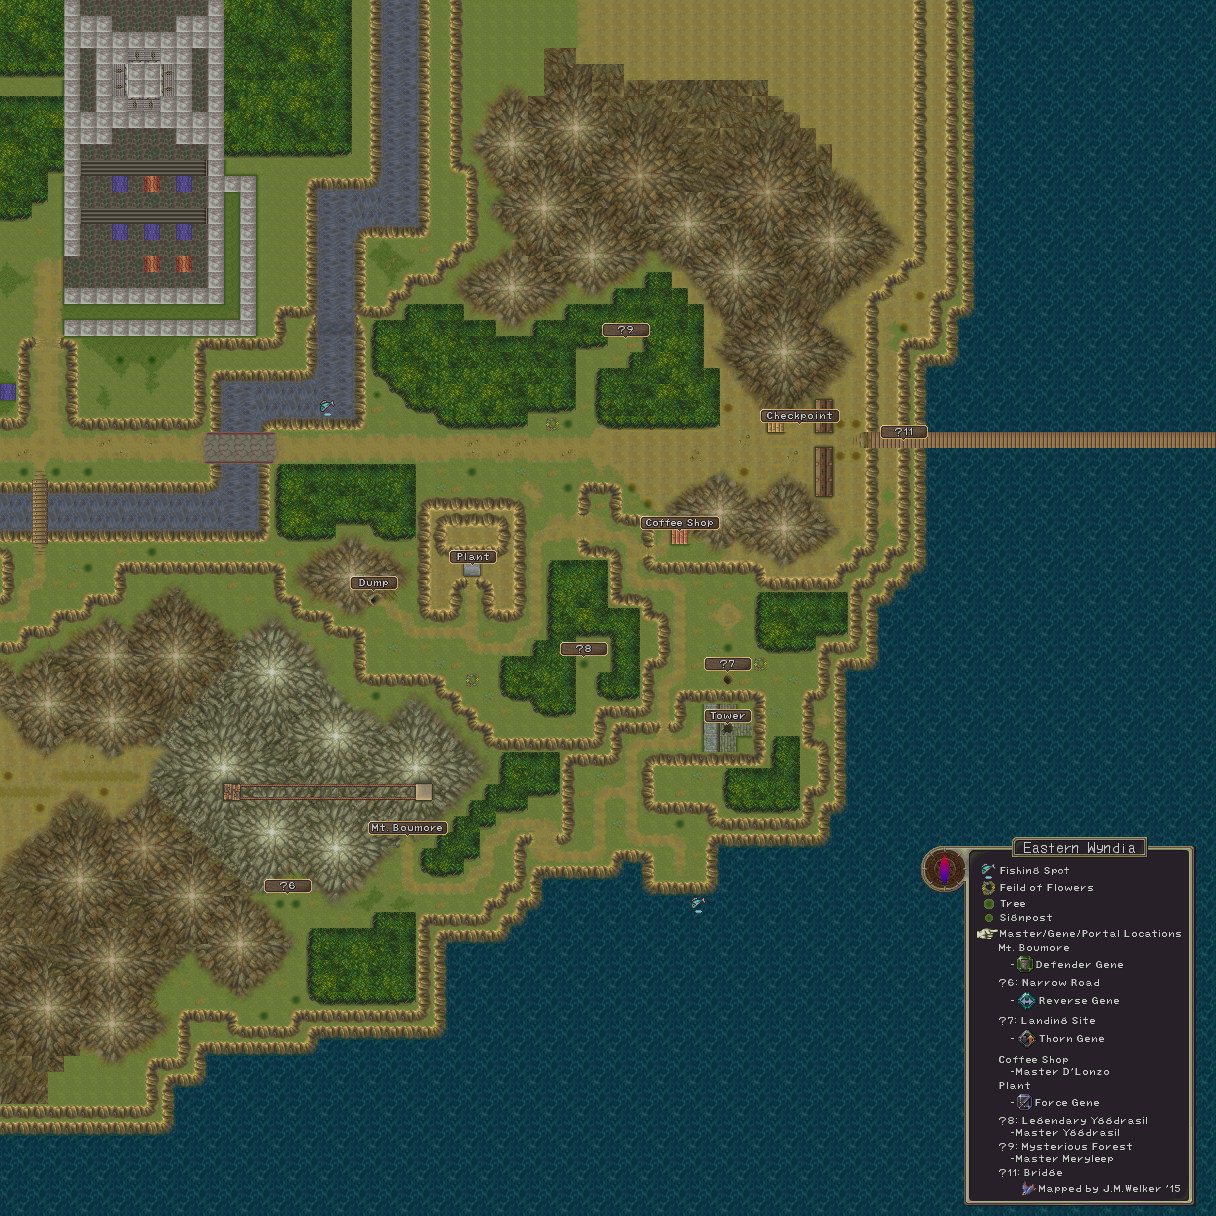 resident evil zero map, tales of symphonia map, god of war map, skies of arcadia map, devil may cry map, legend of dragoon map, pool of radiance map, illusion of gaia map, shining force map, chrono trigger map, chrono cross map, legacy of kain map, on breath of fire map